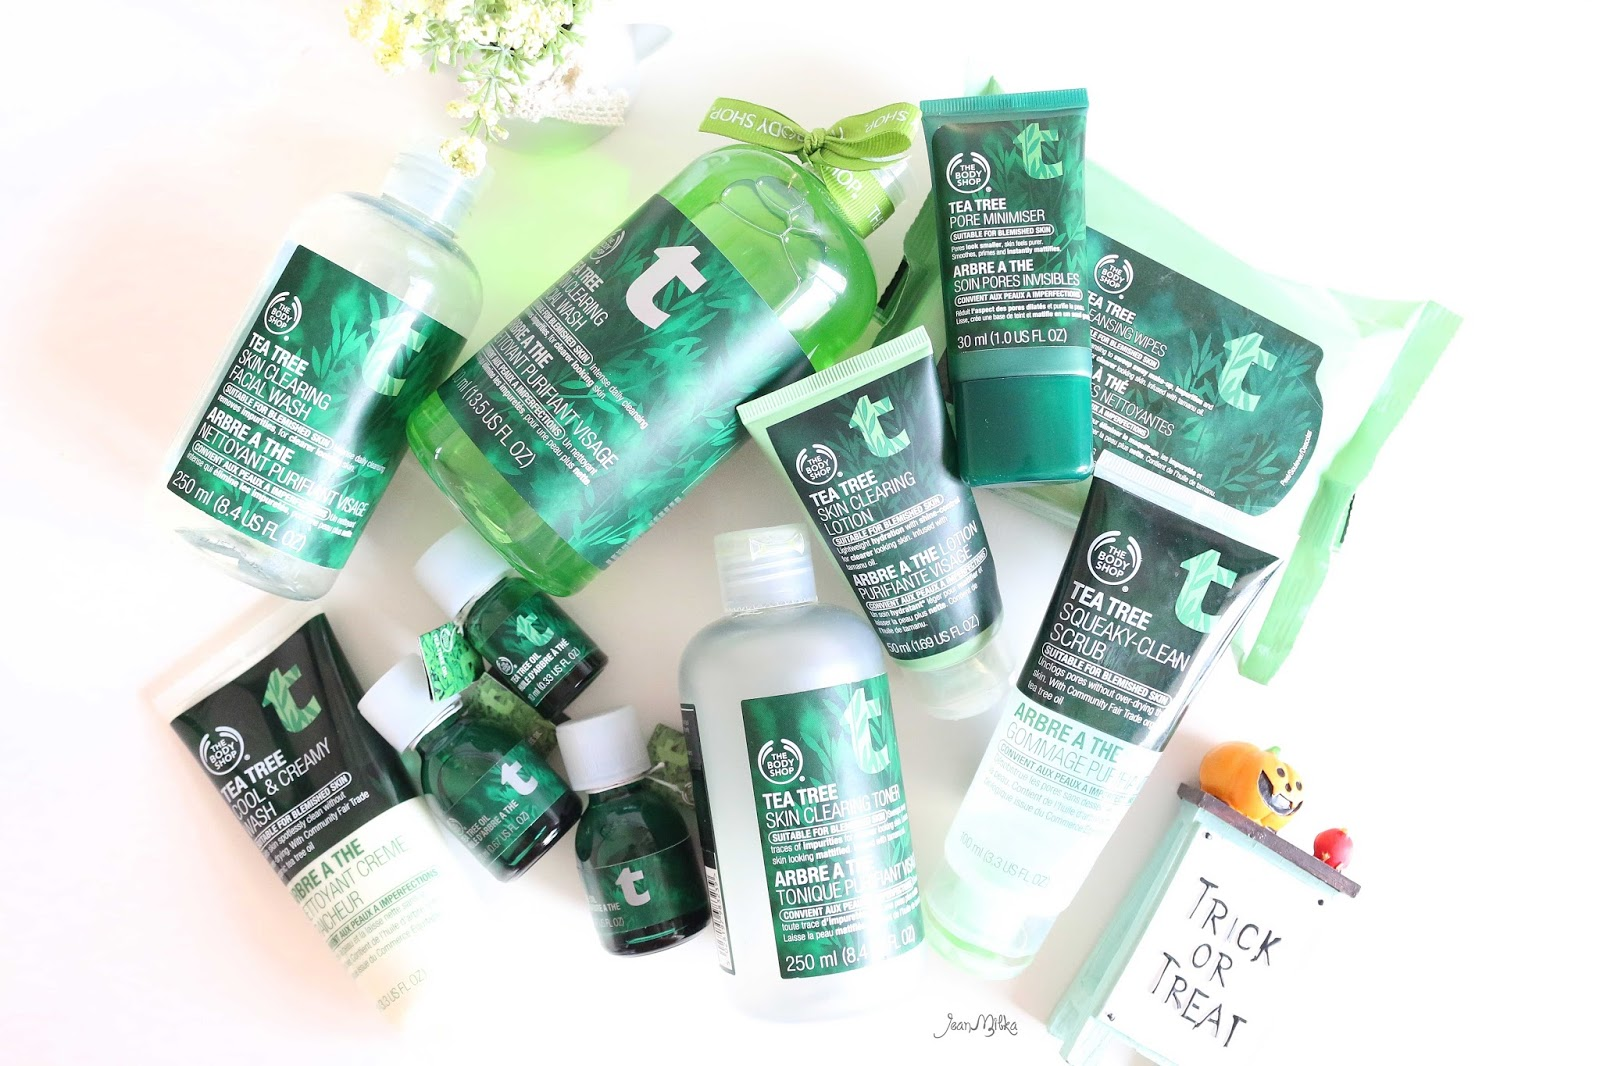 the body shop, body shop, body shop tea tree, tea tree, jerawat, acne, oily skin, skin care, beauty blog